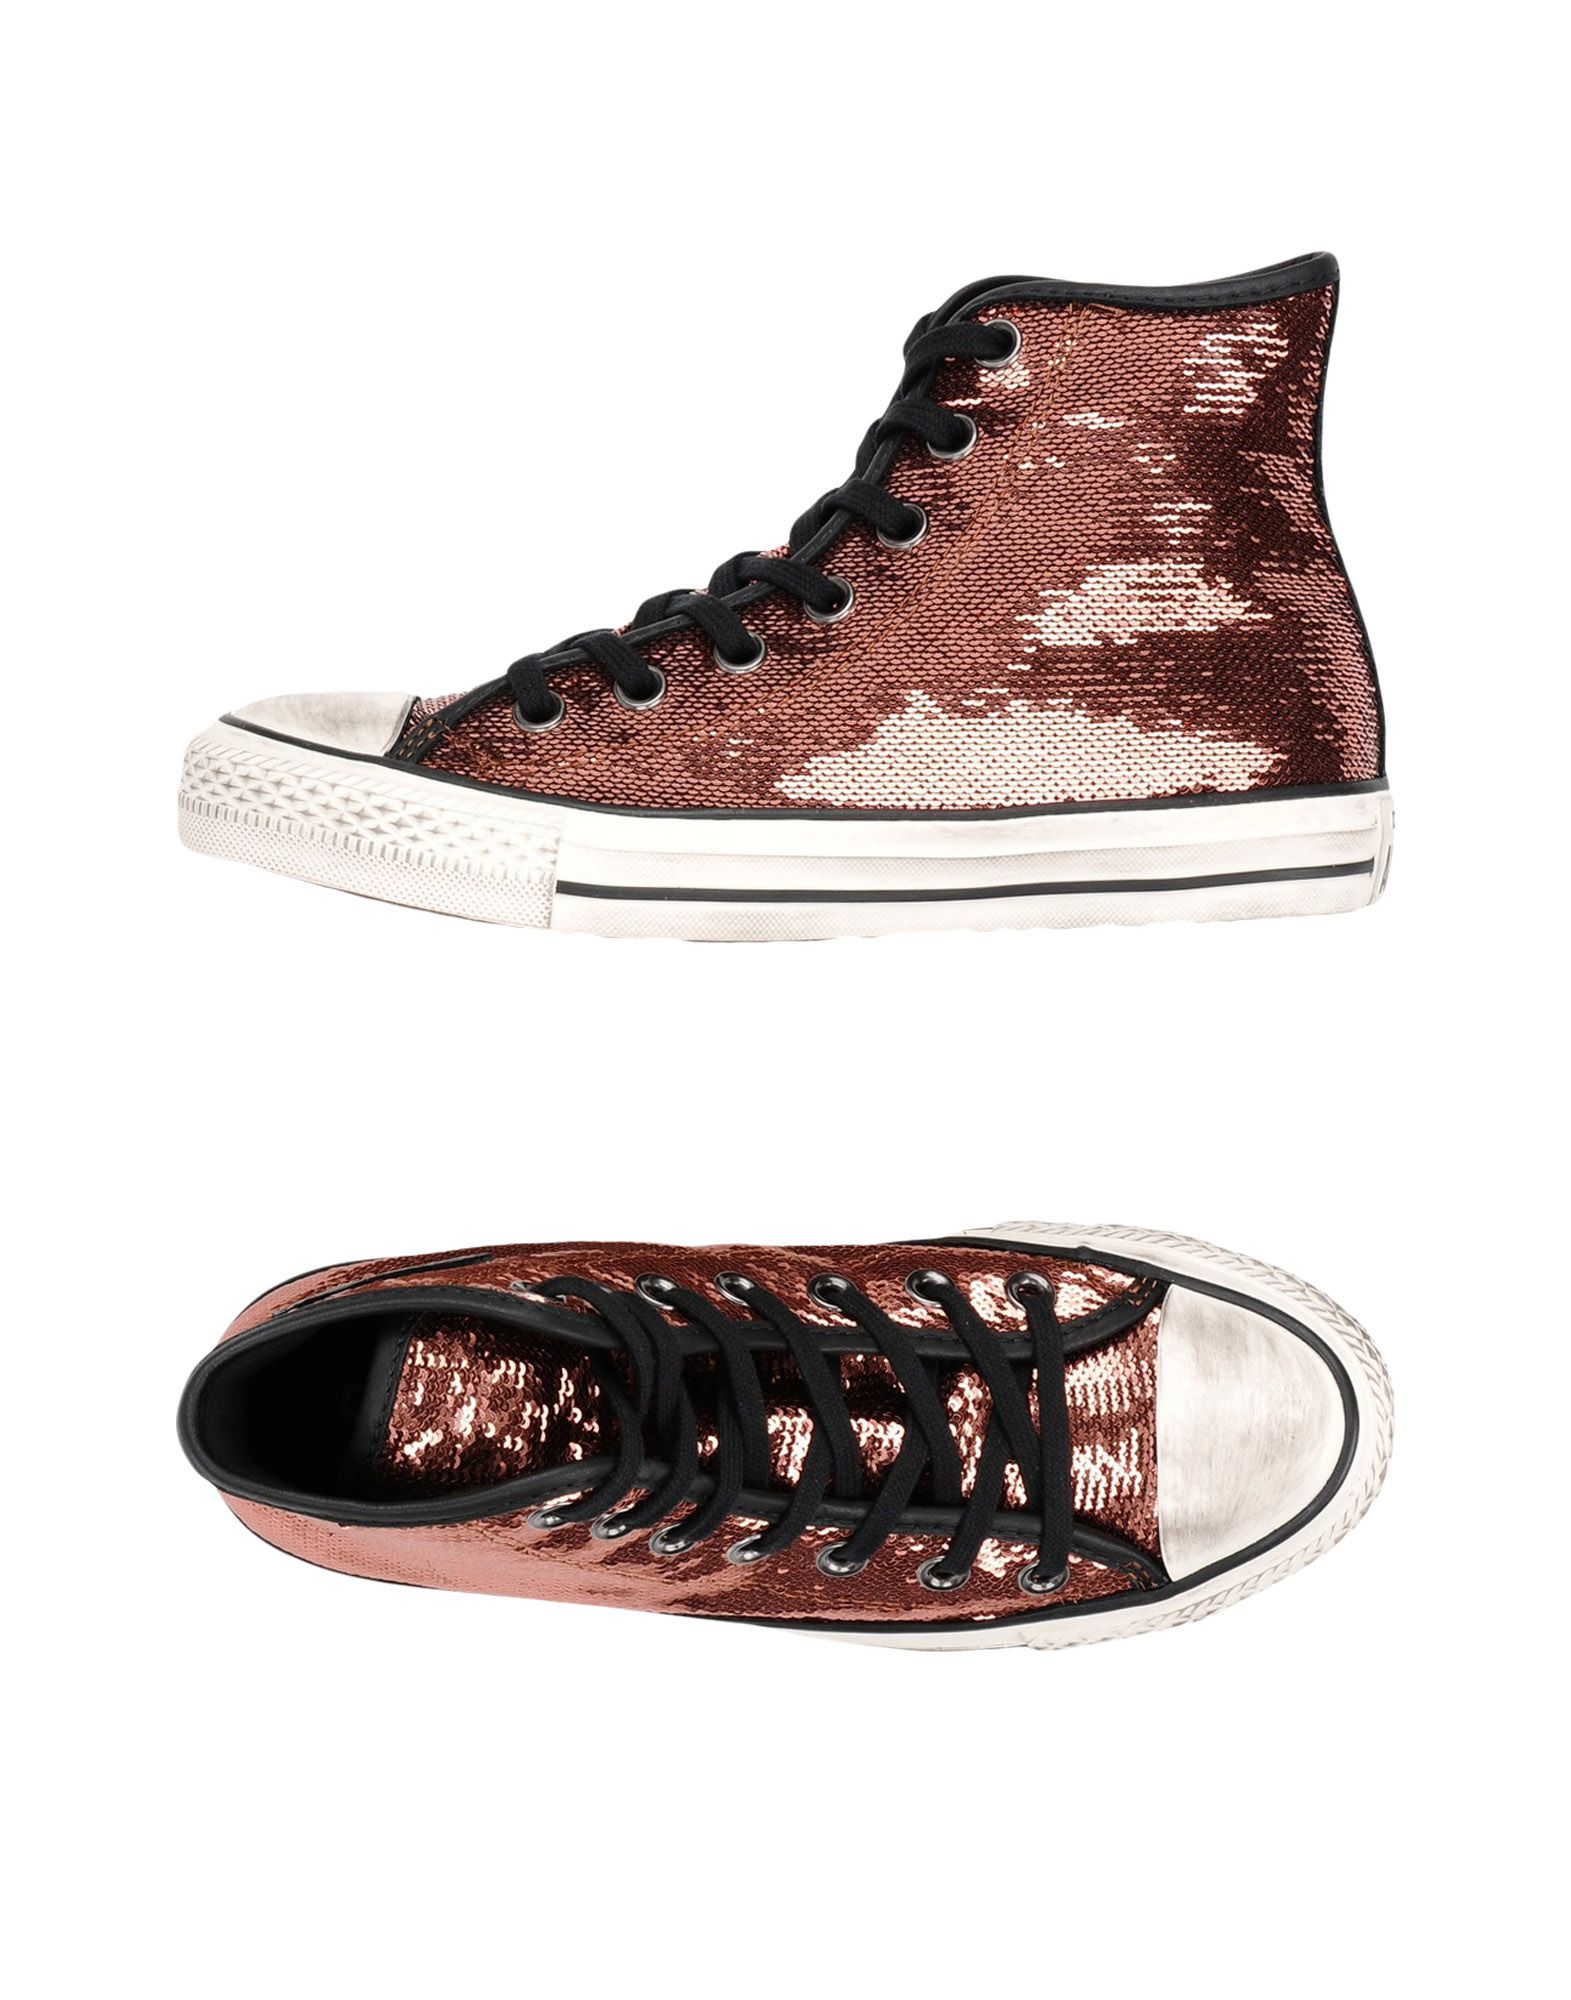 Sneakers Converse All Star Ct As Hi Sequins Distressed - Femme - Sneakers Converse All Star sur